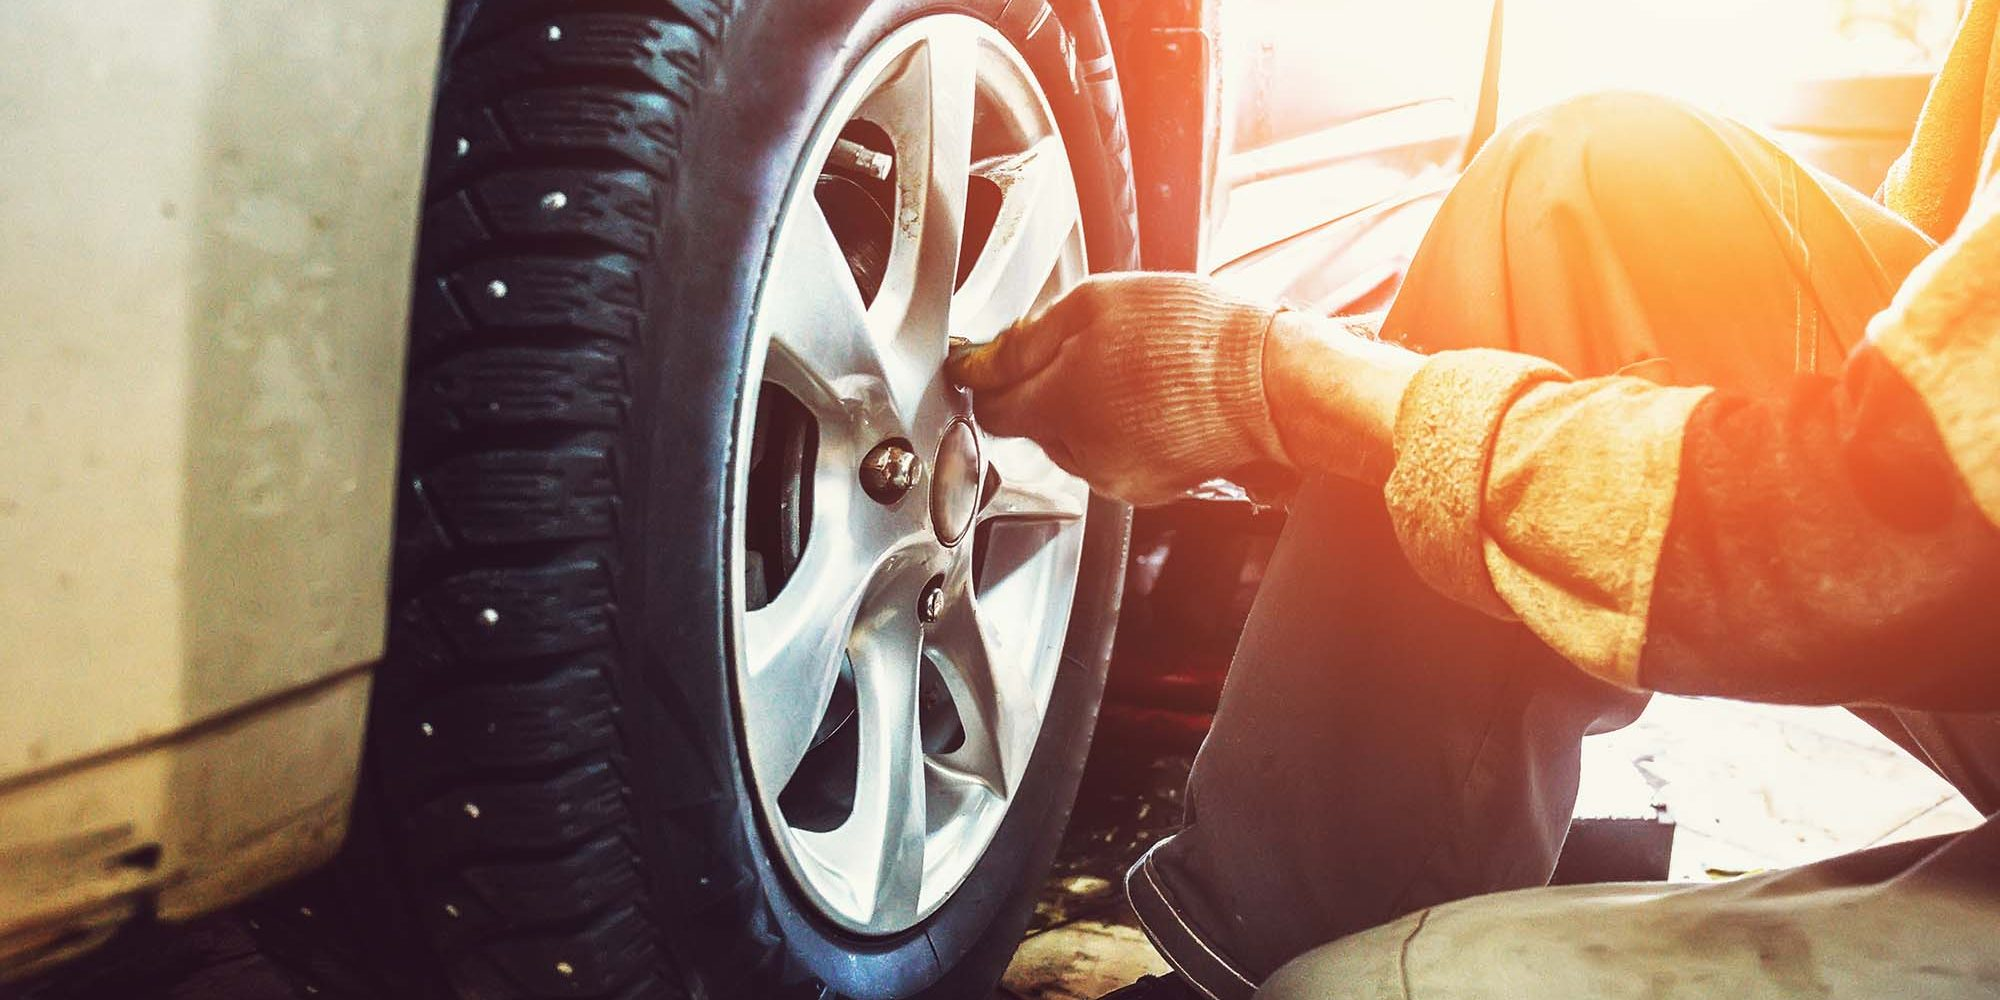 Wheel replacement in Newry